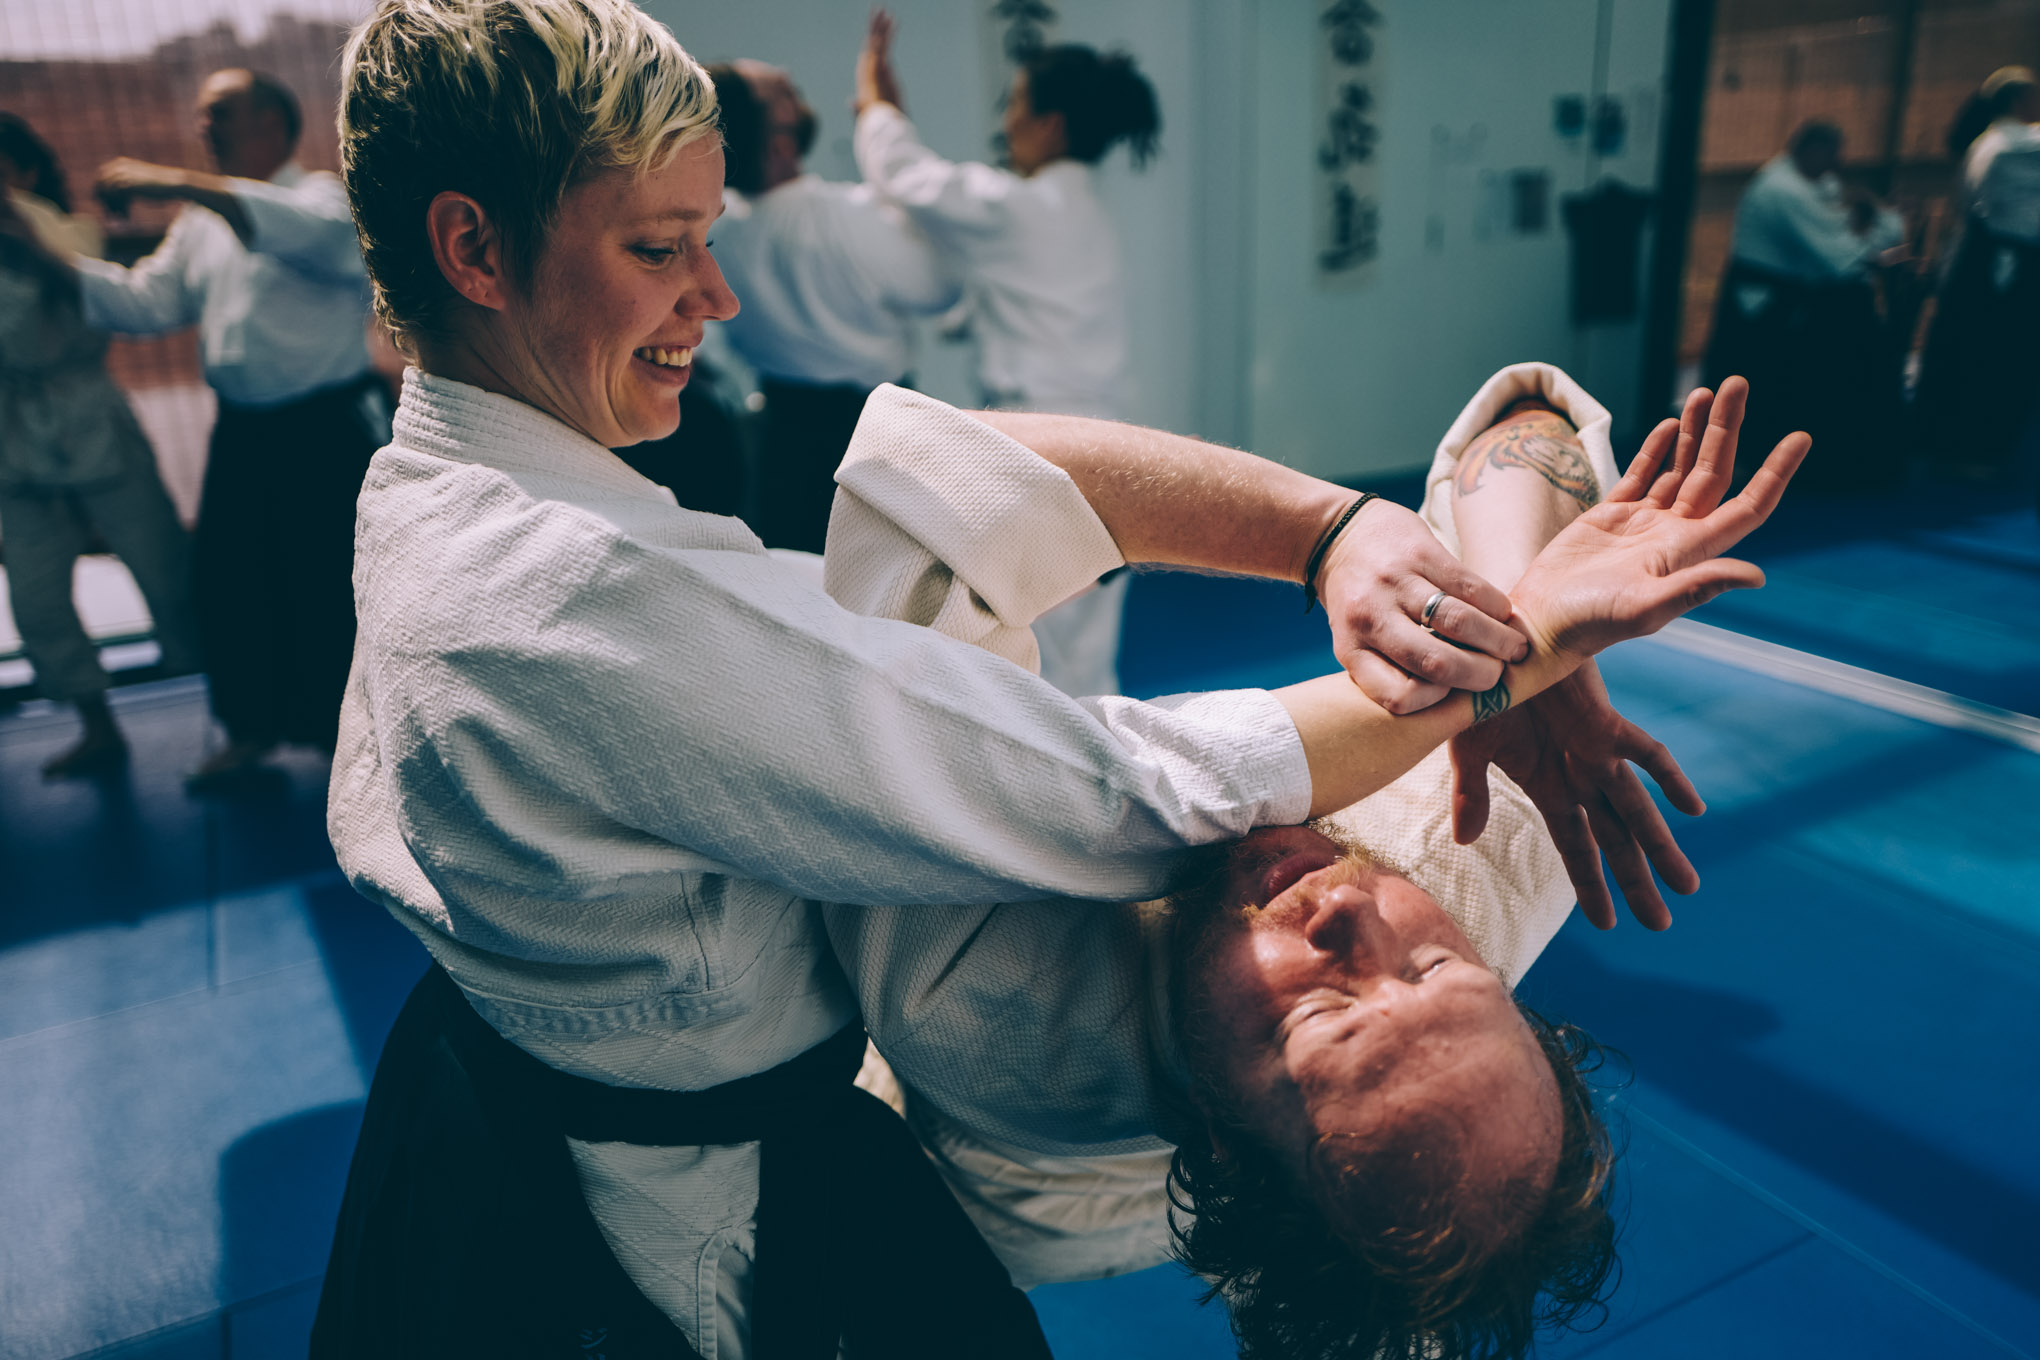 Gillian Macleod warms up in an Aikido class at Bushwick Dojo in Brooklyn